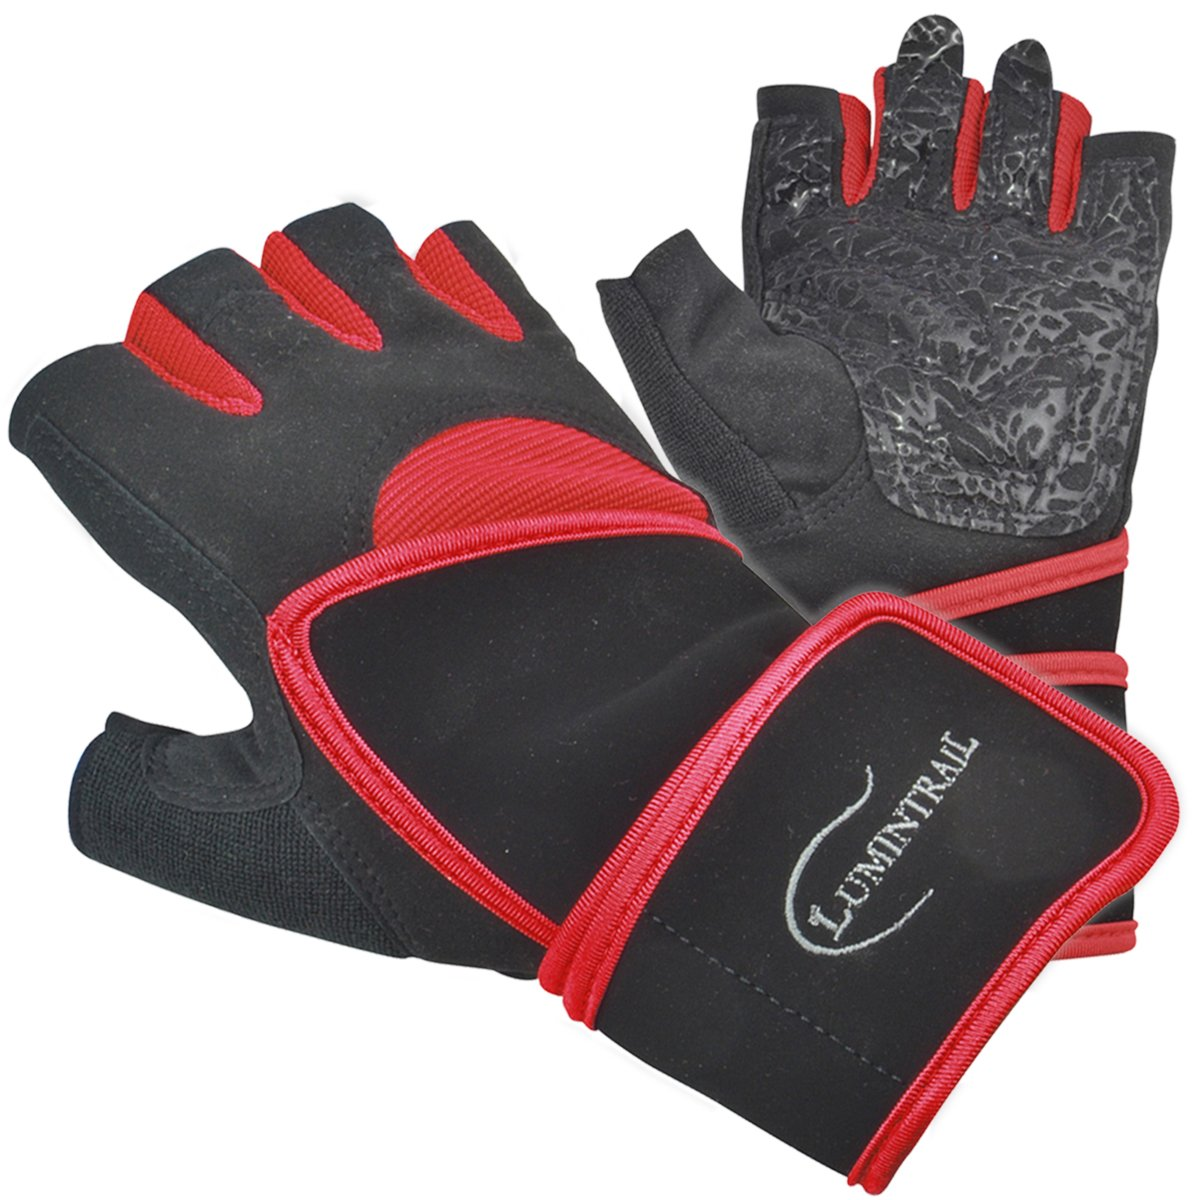 Lumintrail all-purpose Womens Sport Fitness Exercise Lifting Half Finger Gloves with 18